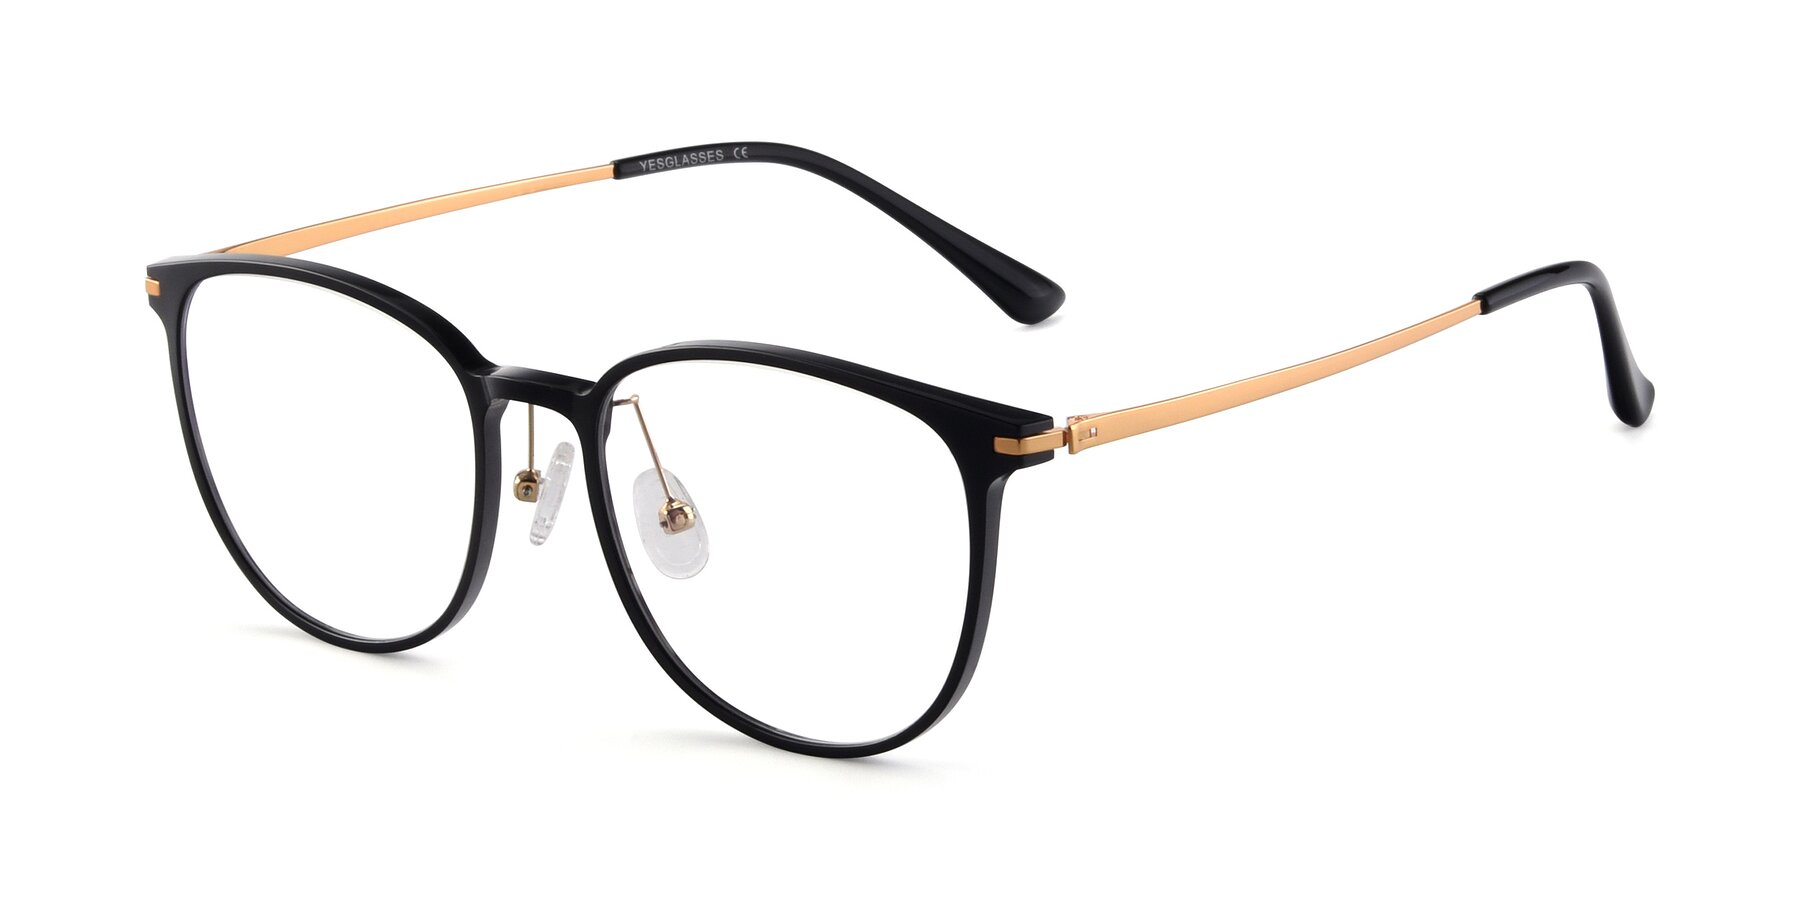 Angle of Justice in Black with Clear Eyeglass Lenses